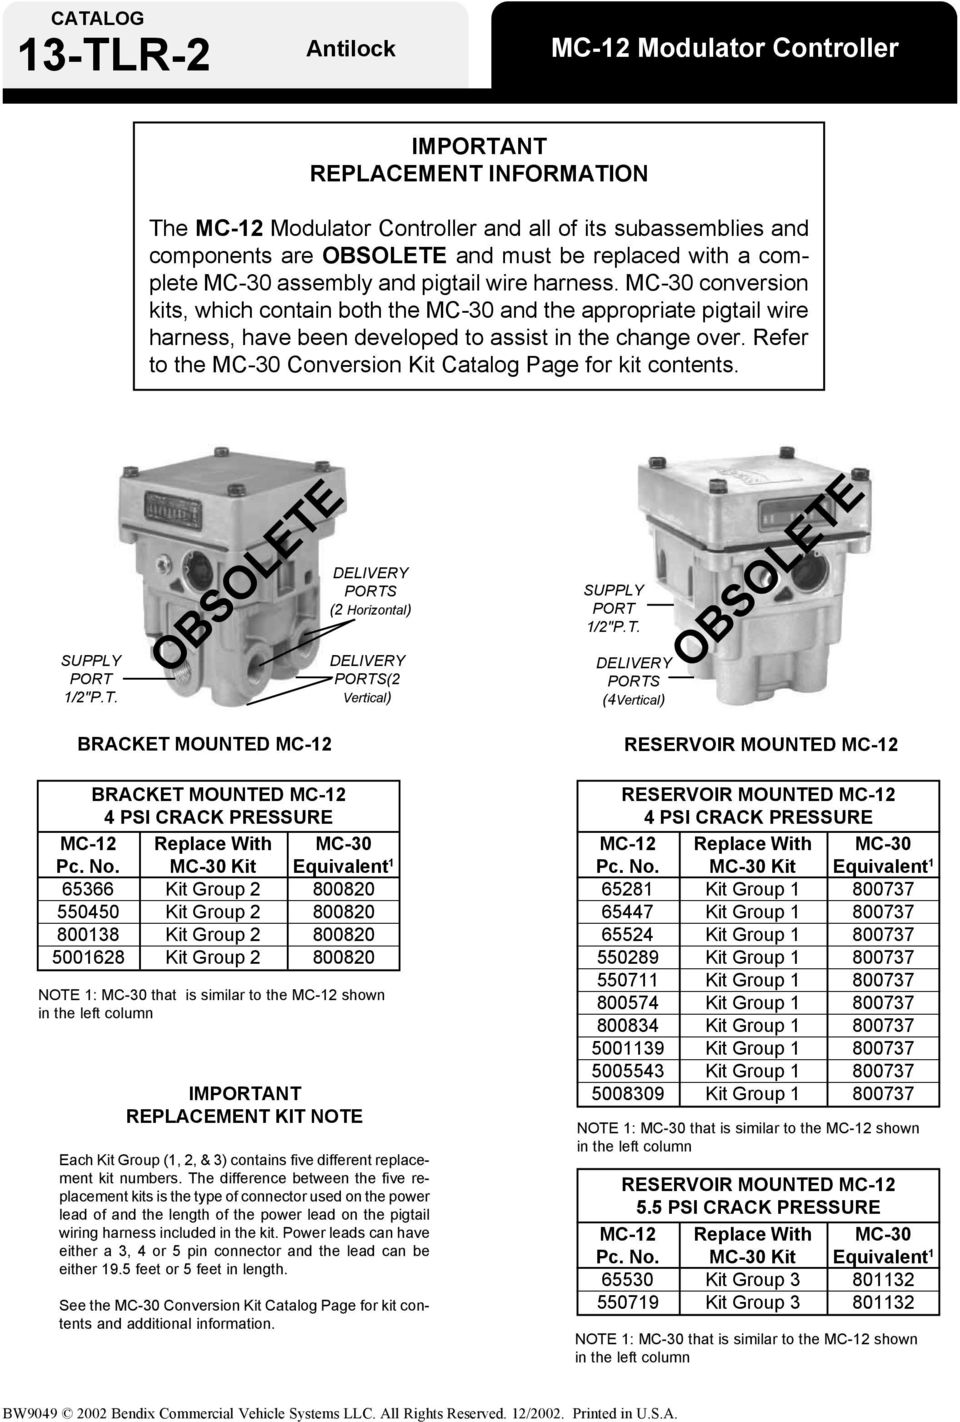 Bendix Abs For Trailers Pdf Wiring Harness Refer To The Mc 30 Conversion Kit Catalog Page Contents Supply Port